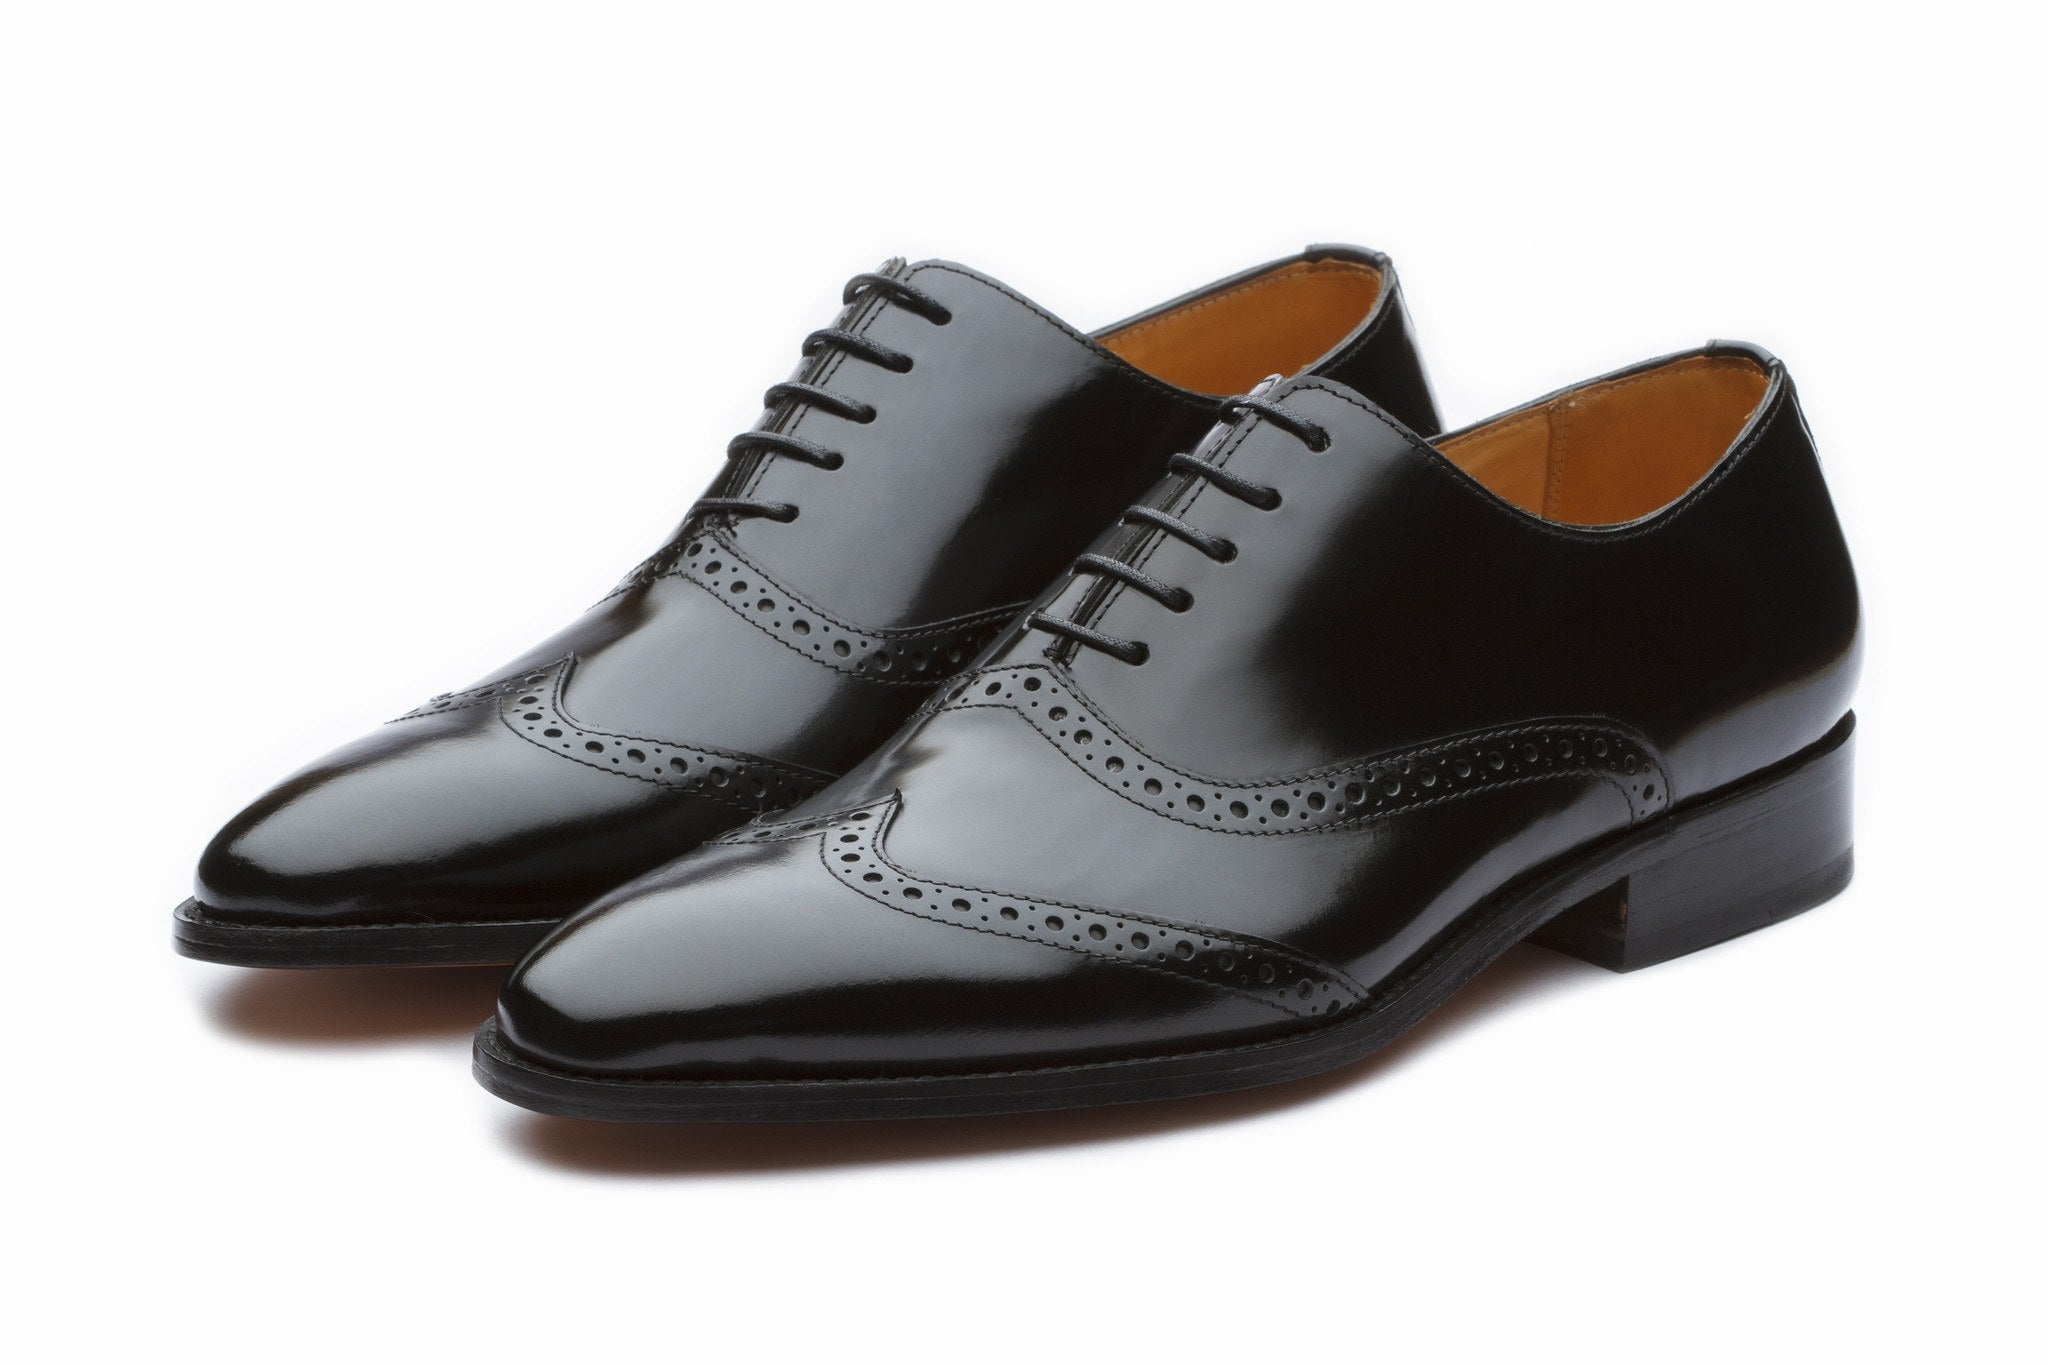 Oxfords - Black Wingtip Oxford